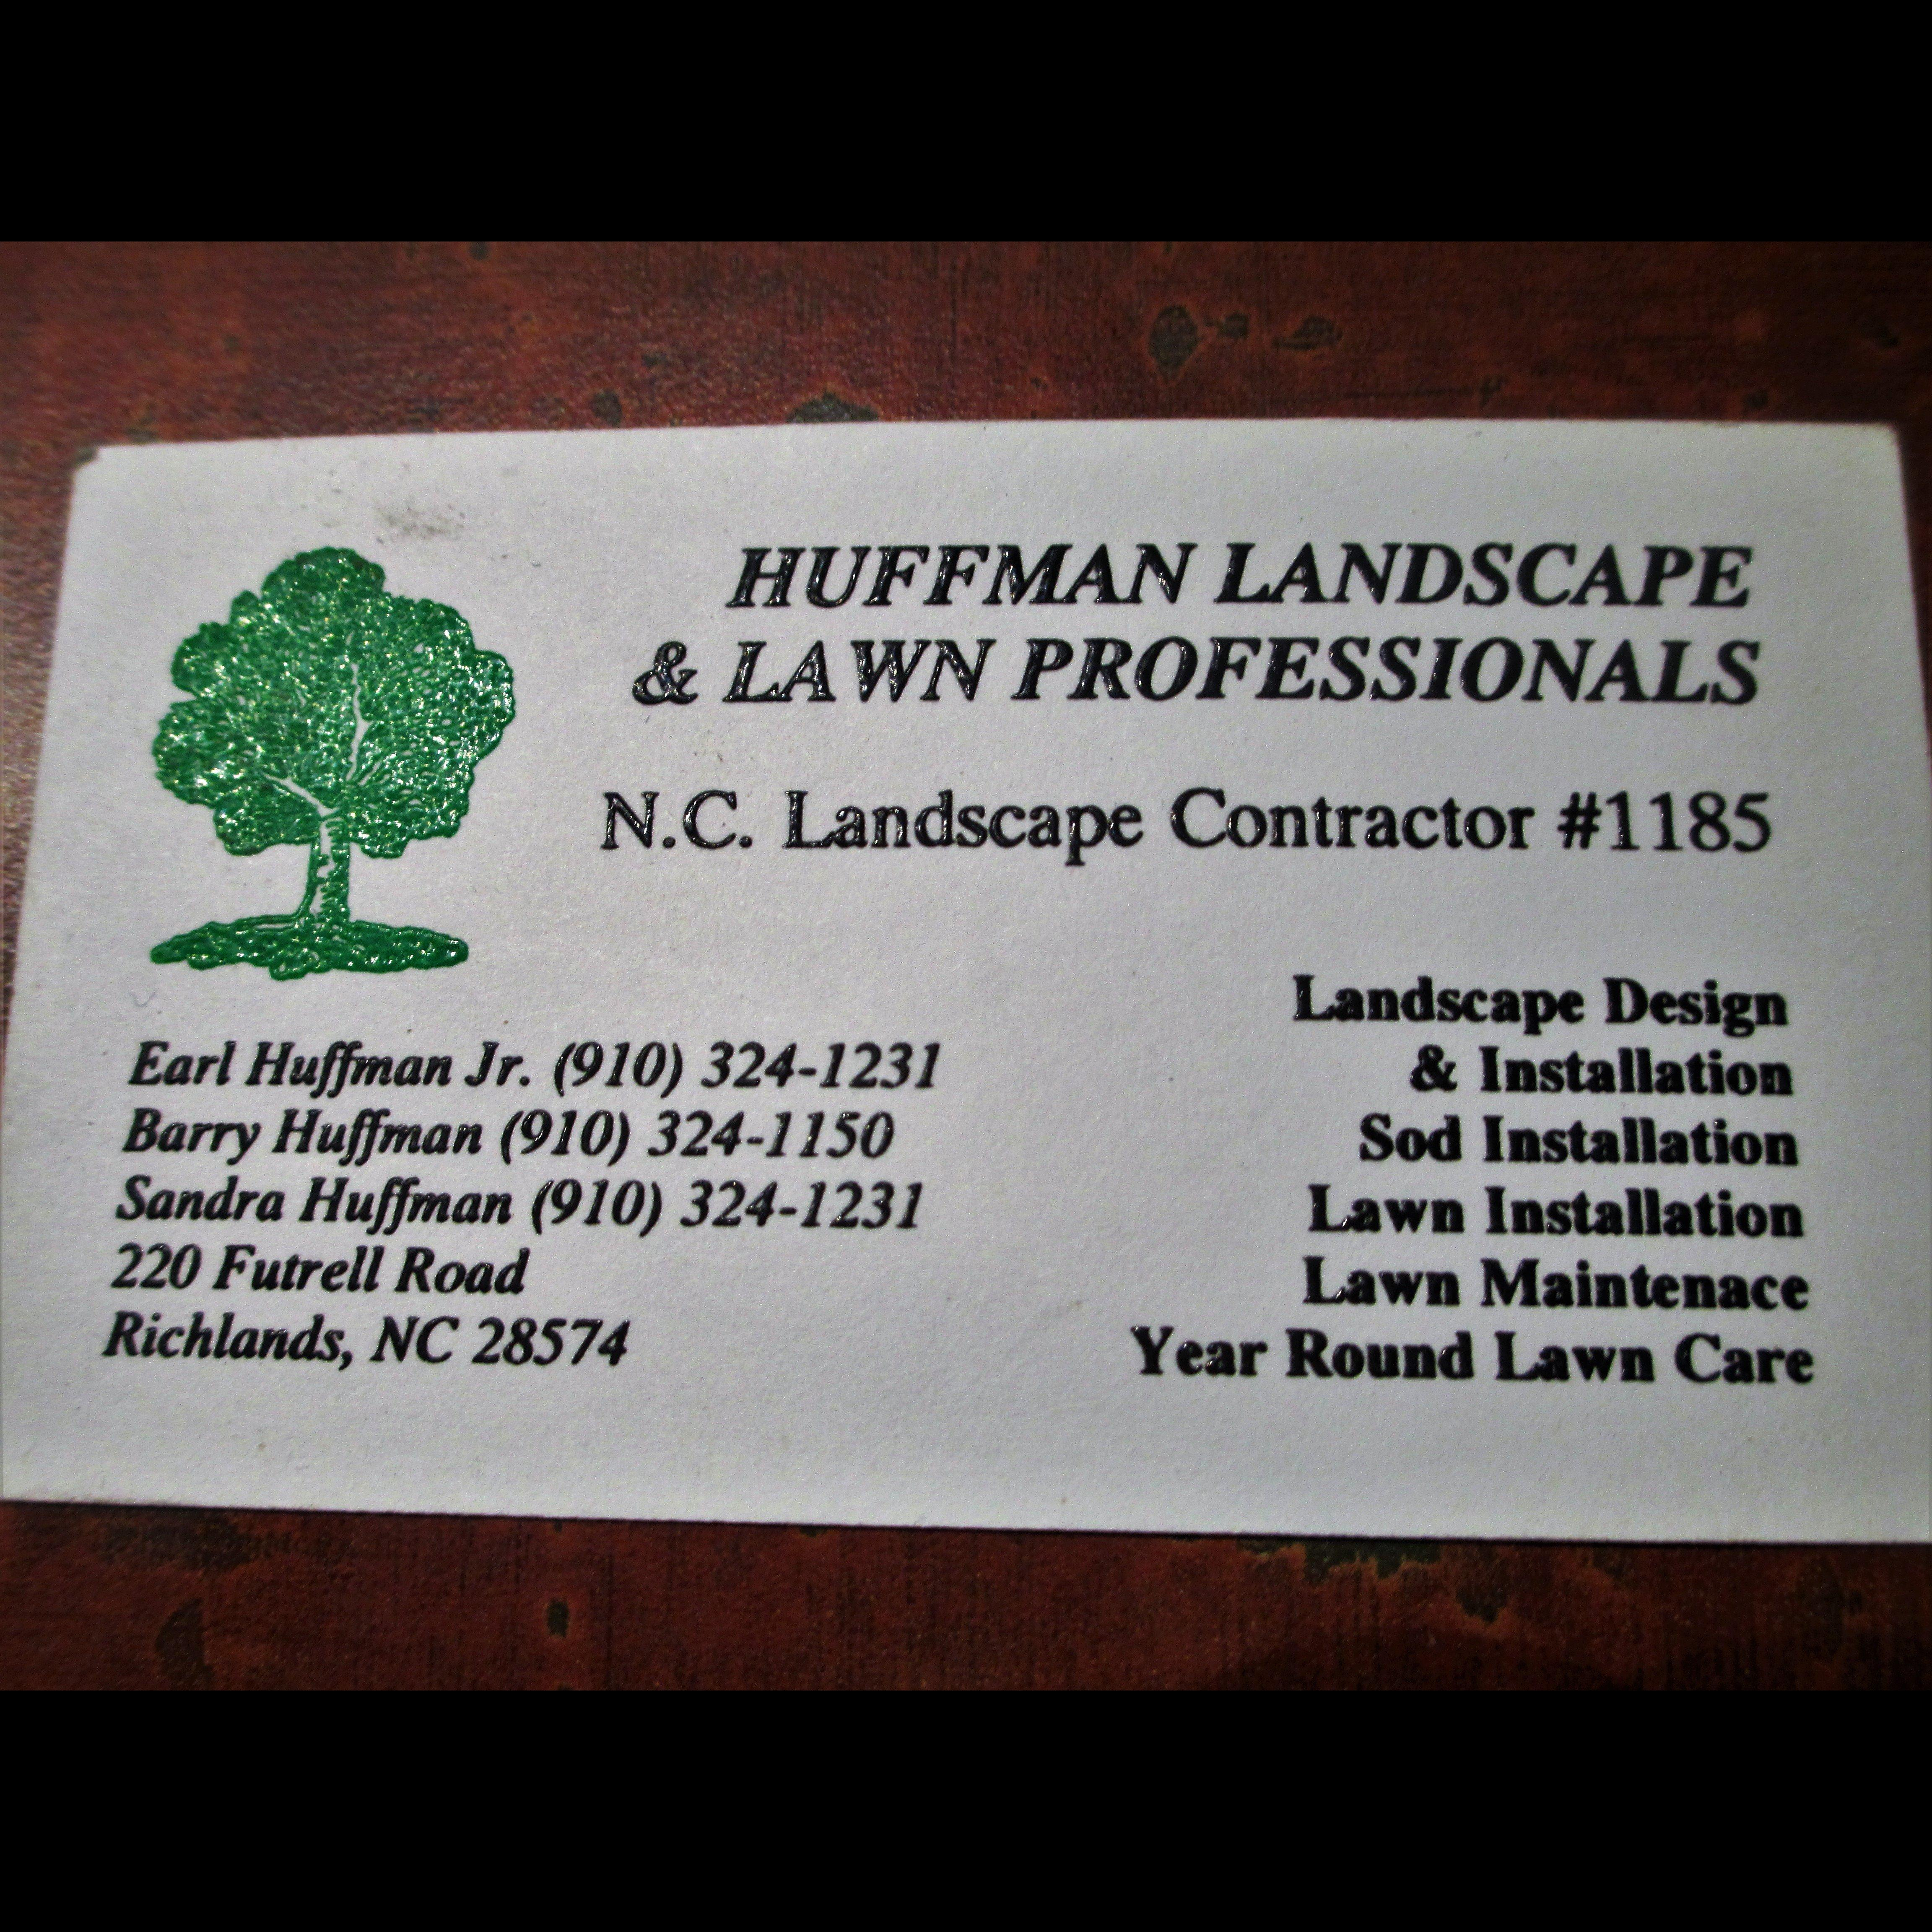 Huffman Landscaping and Lawn Professionals - Richlands, NC - Landscape Architects & Design